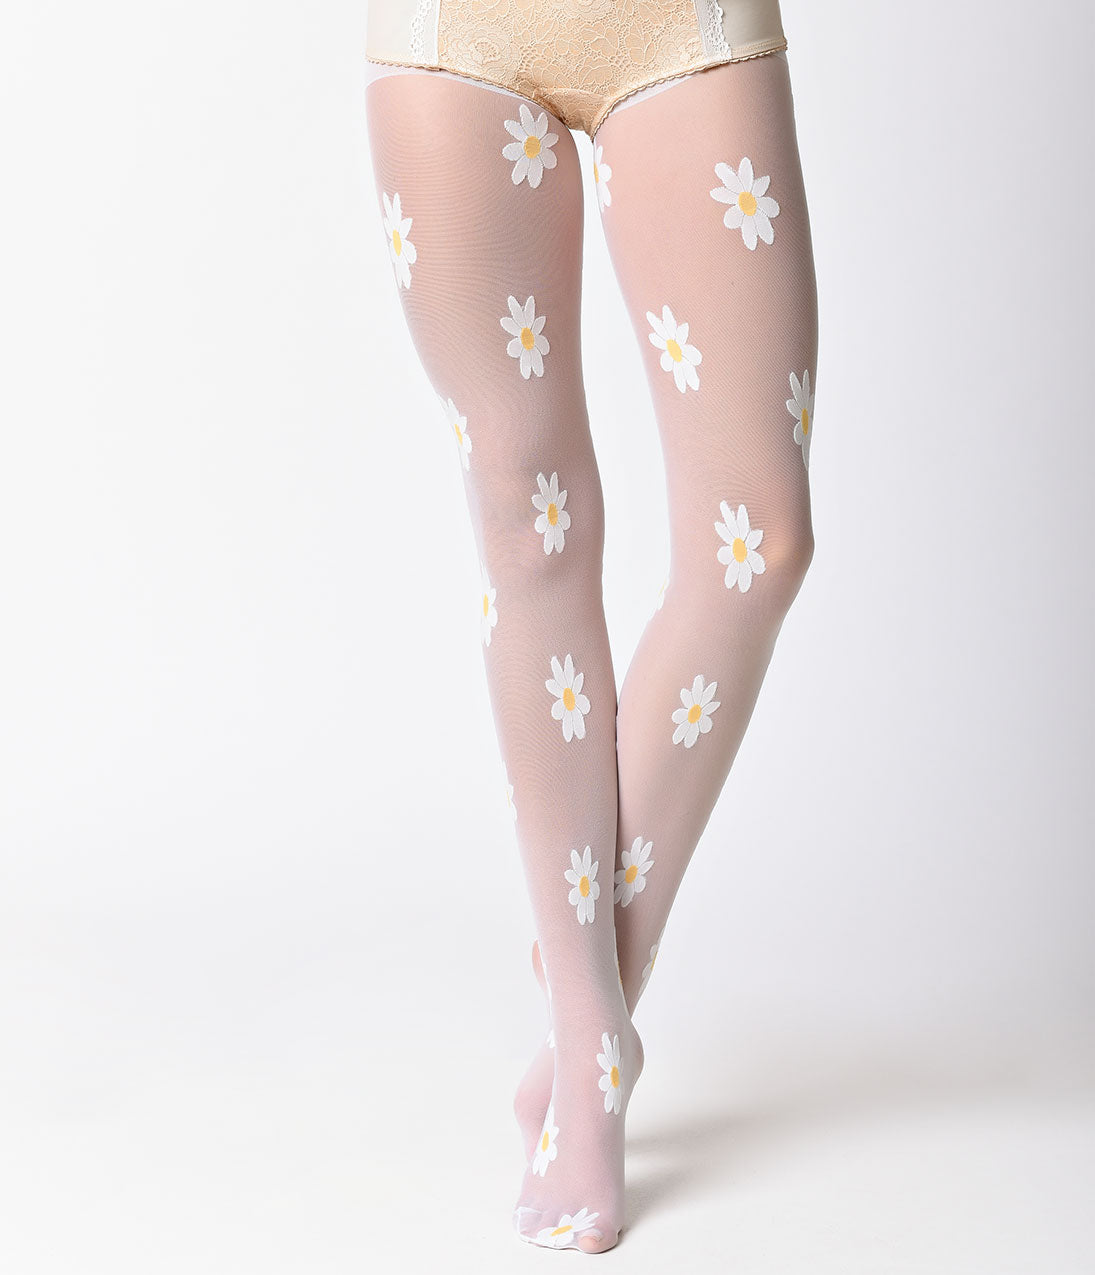 60s Costumes: Hippie, Go Go Dancer, Flower Child, Mod Style White Daisy Woven Sheer Pantyhose $12.00 AT vintagedancer.com